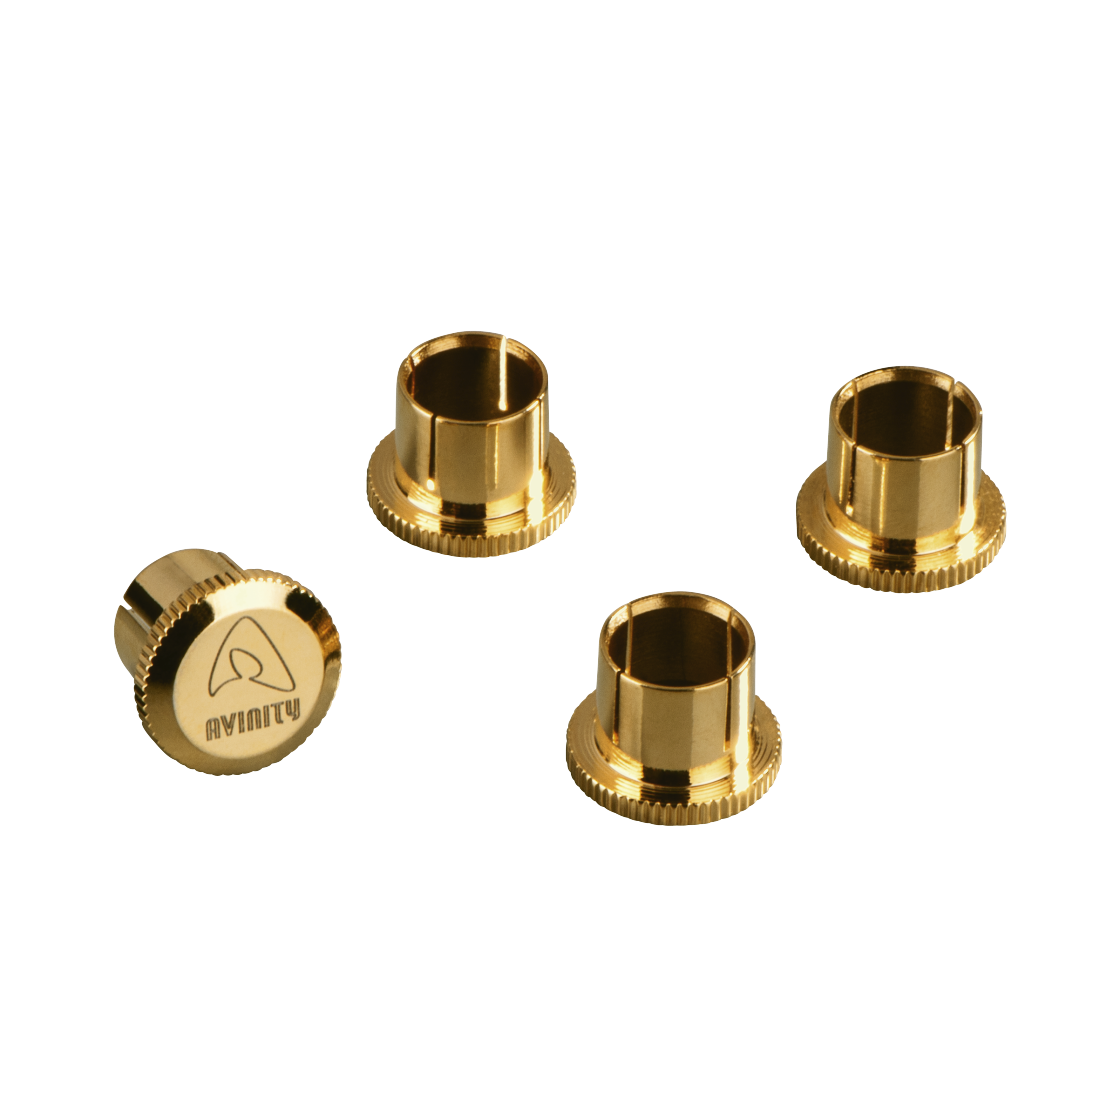 abx High-Res Image - Avinity, RCA Protective Caps, gold-plated, set of 4